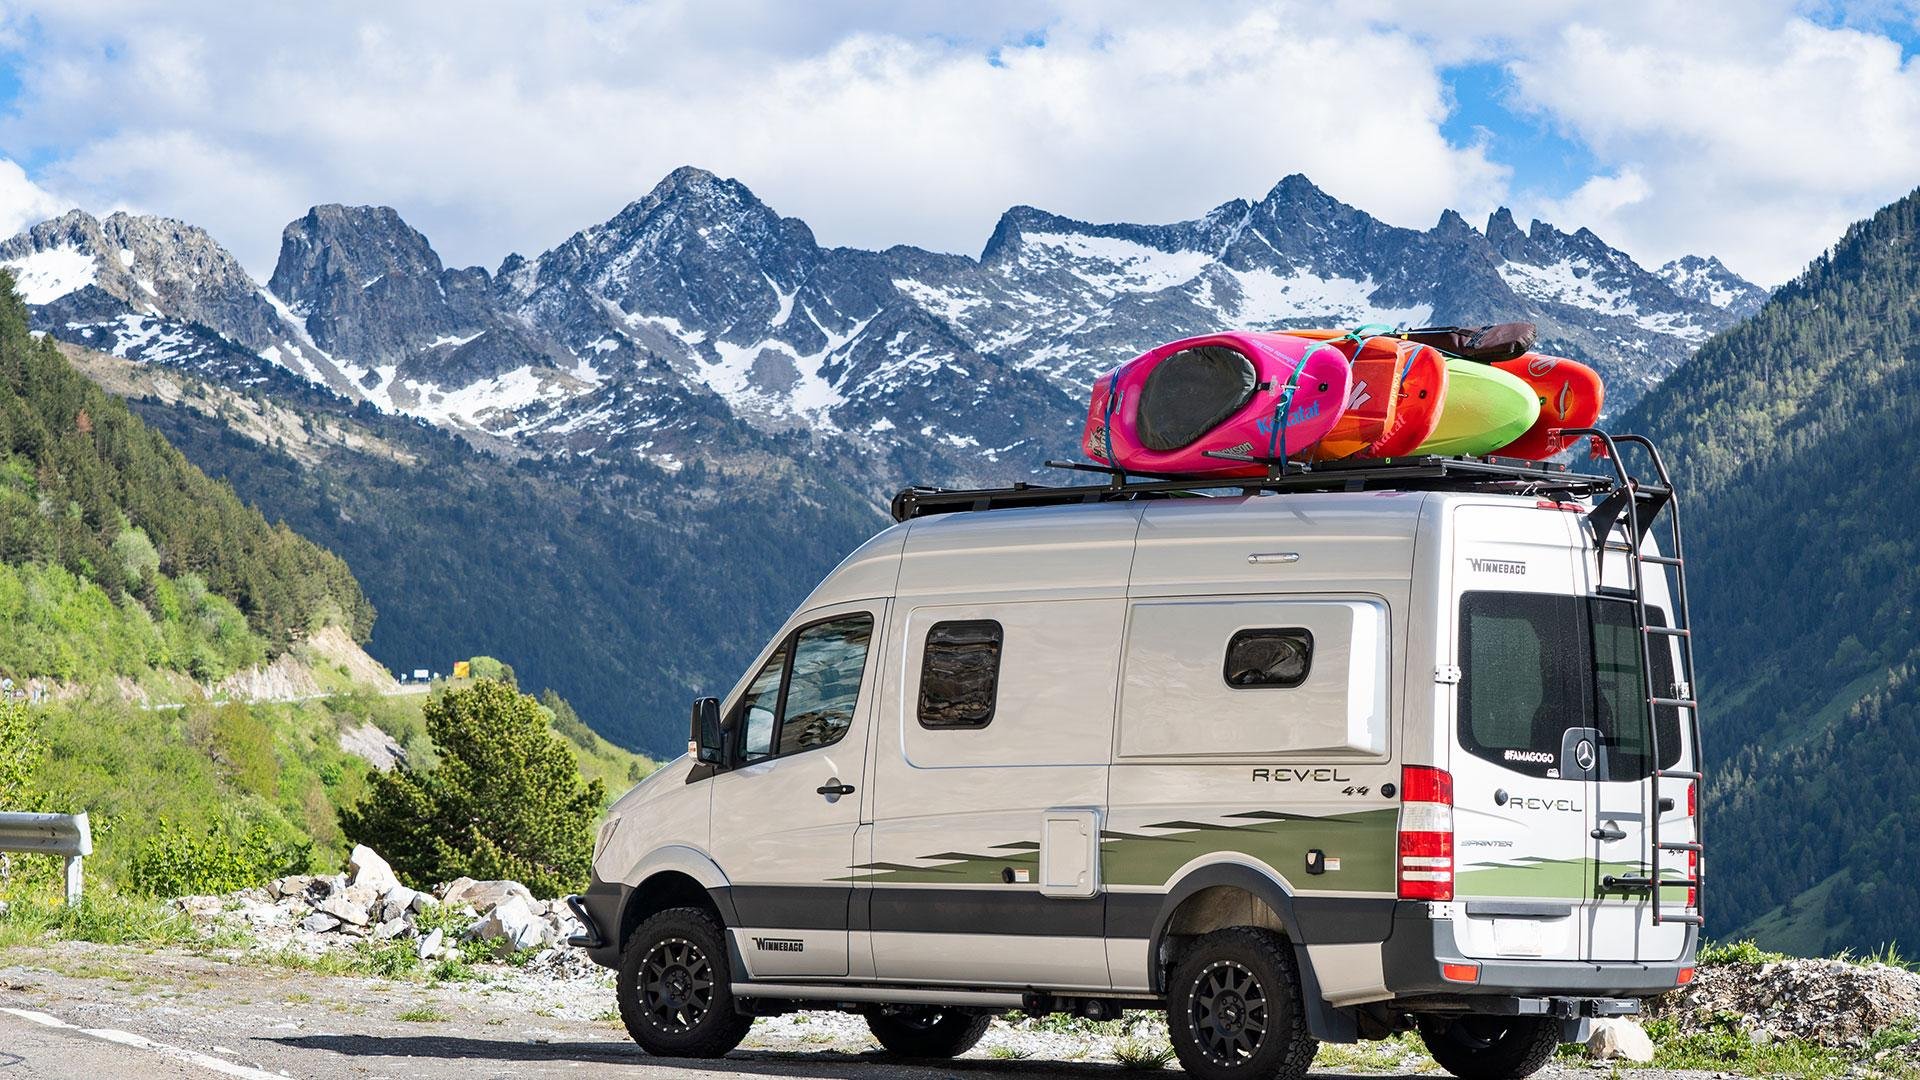 Winnebago Revel with kayaks on roof rack parked on a mountain side